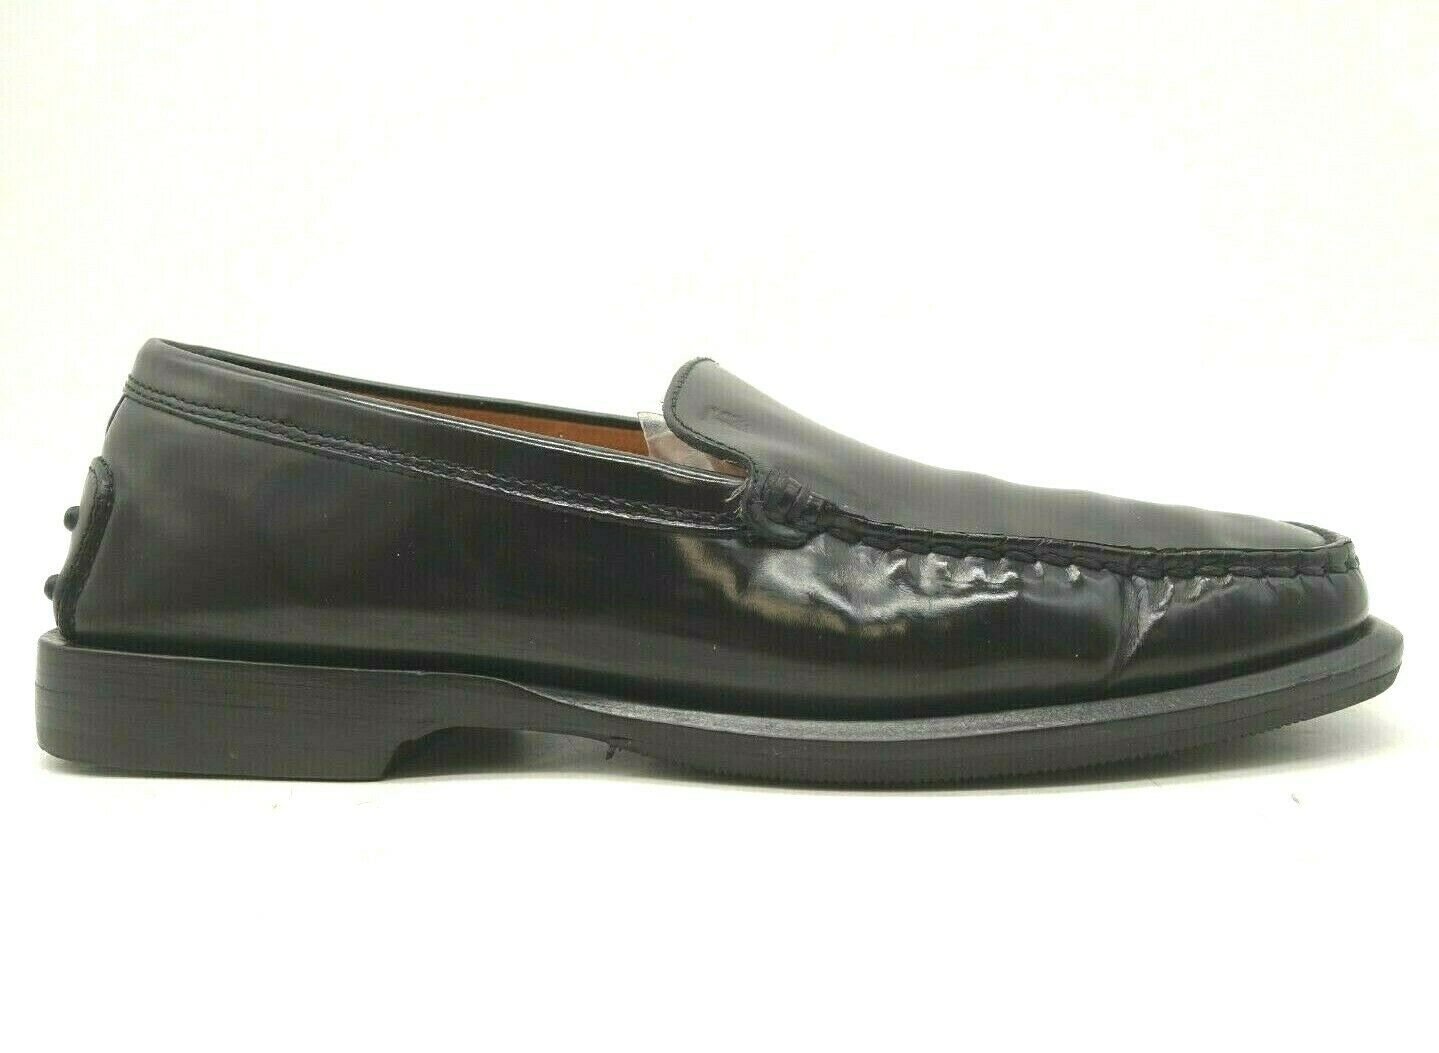 Tods Logo Black Patent Leather Slip On Low Heel Driving Loafers Shoes Women's 5